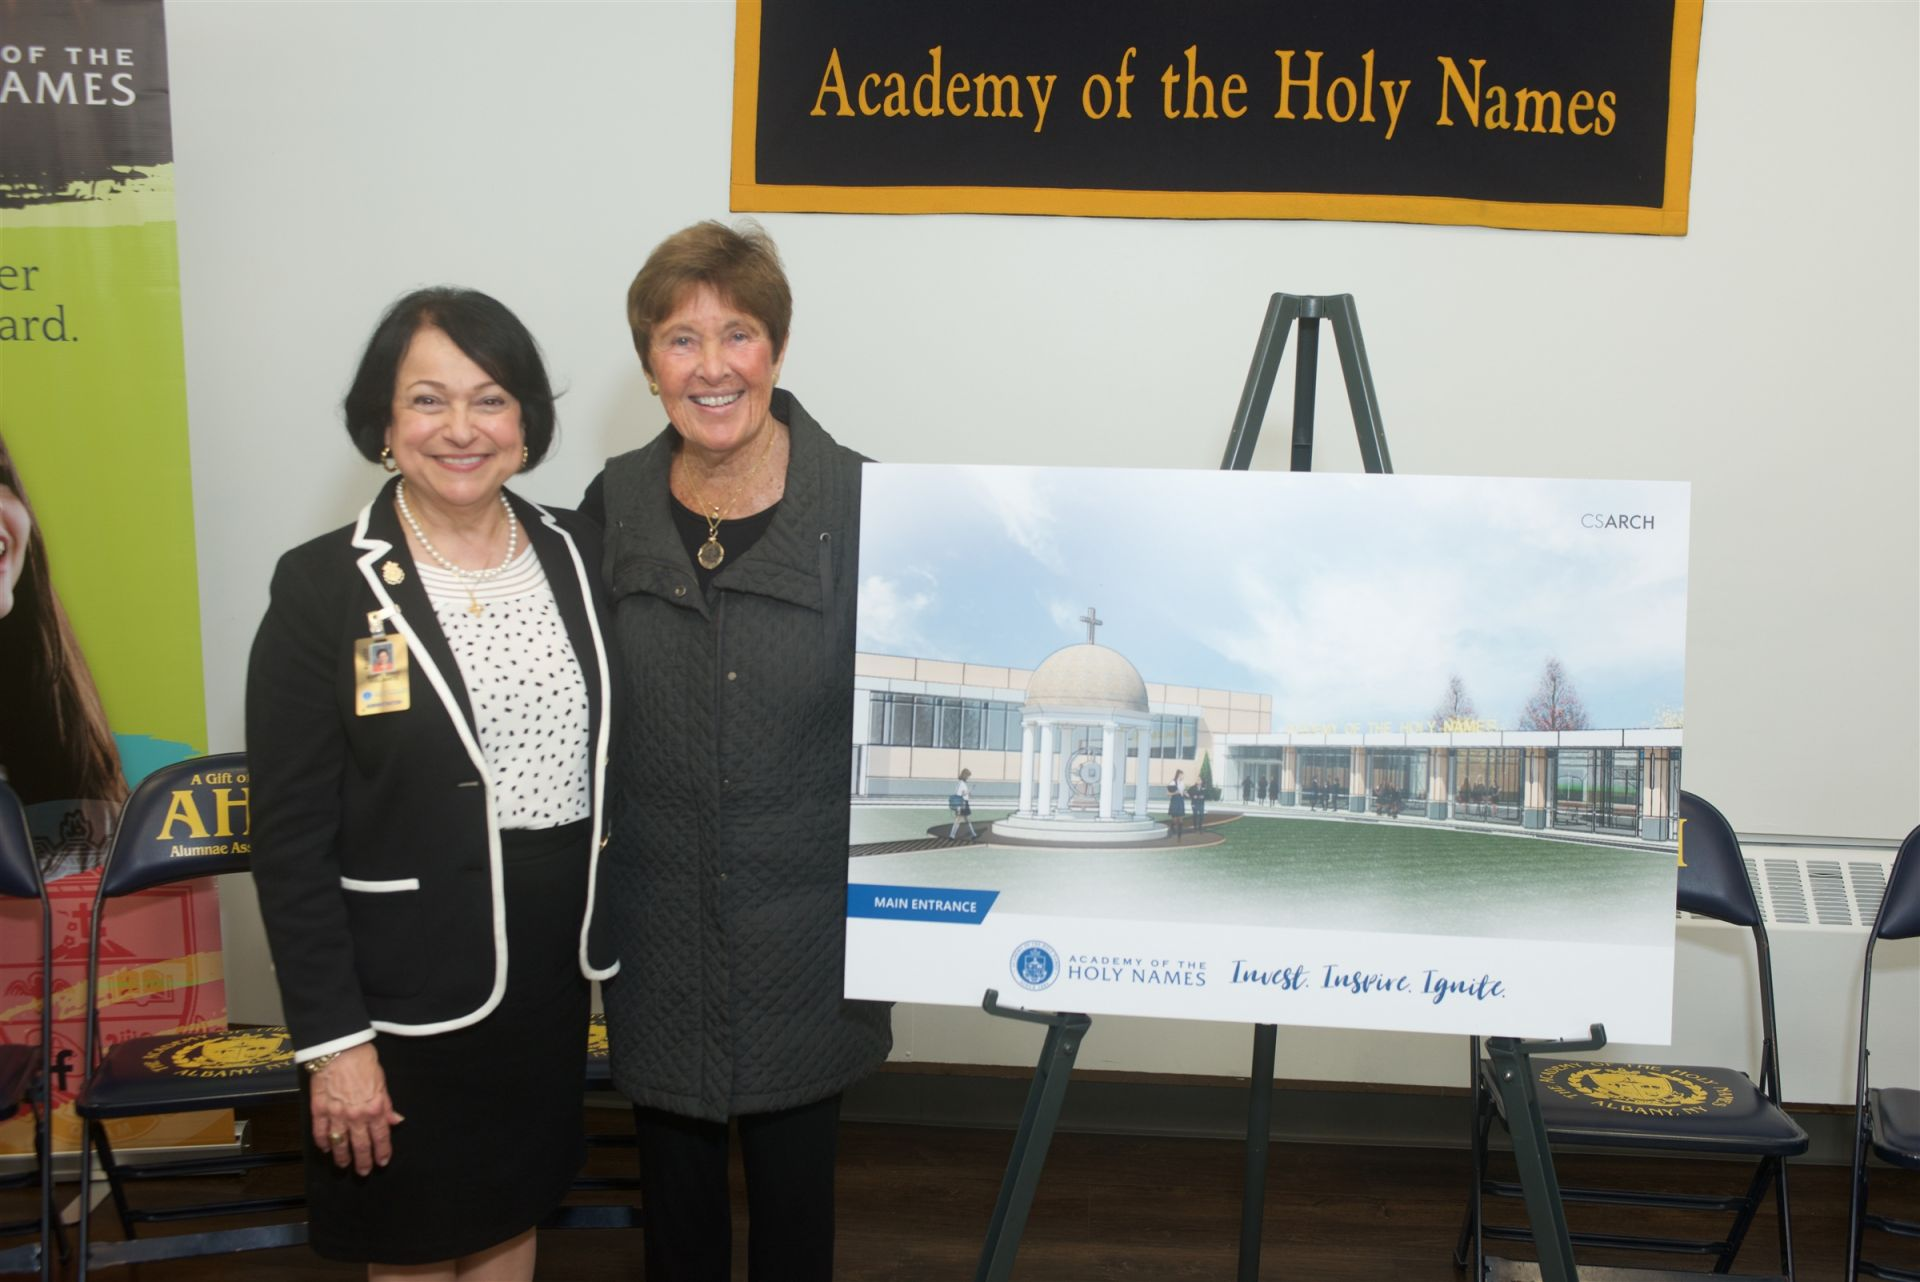 Ms. Vigliante with Honorary Co-Chair, Mary Beth O'Brien